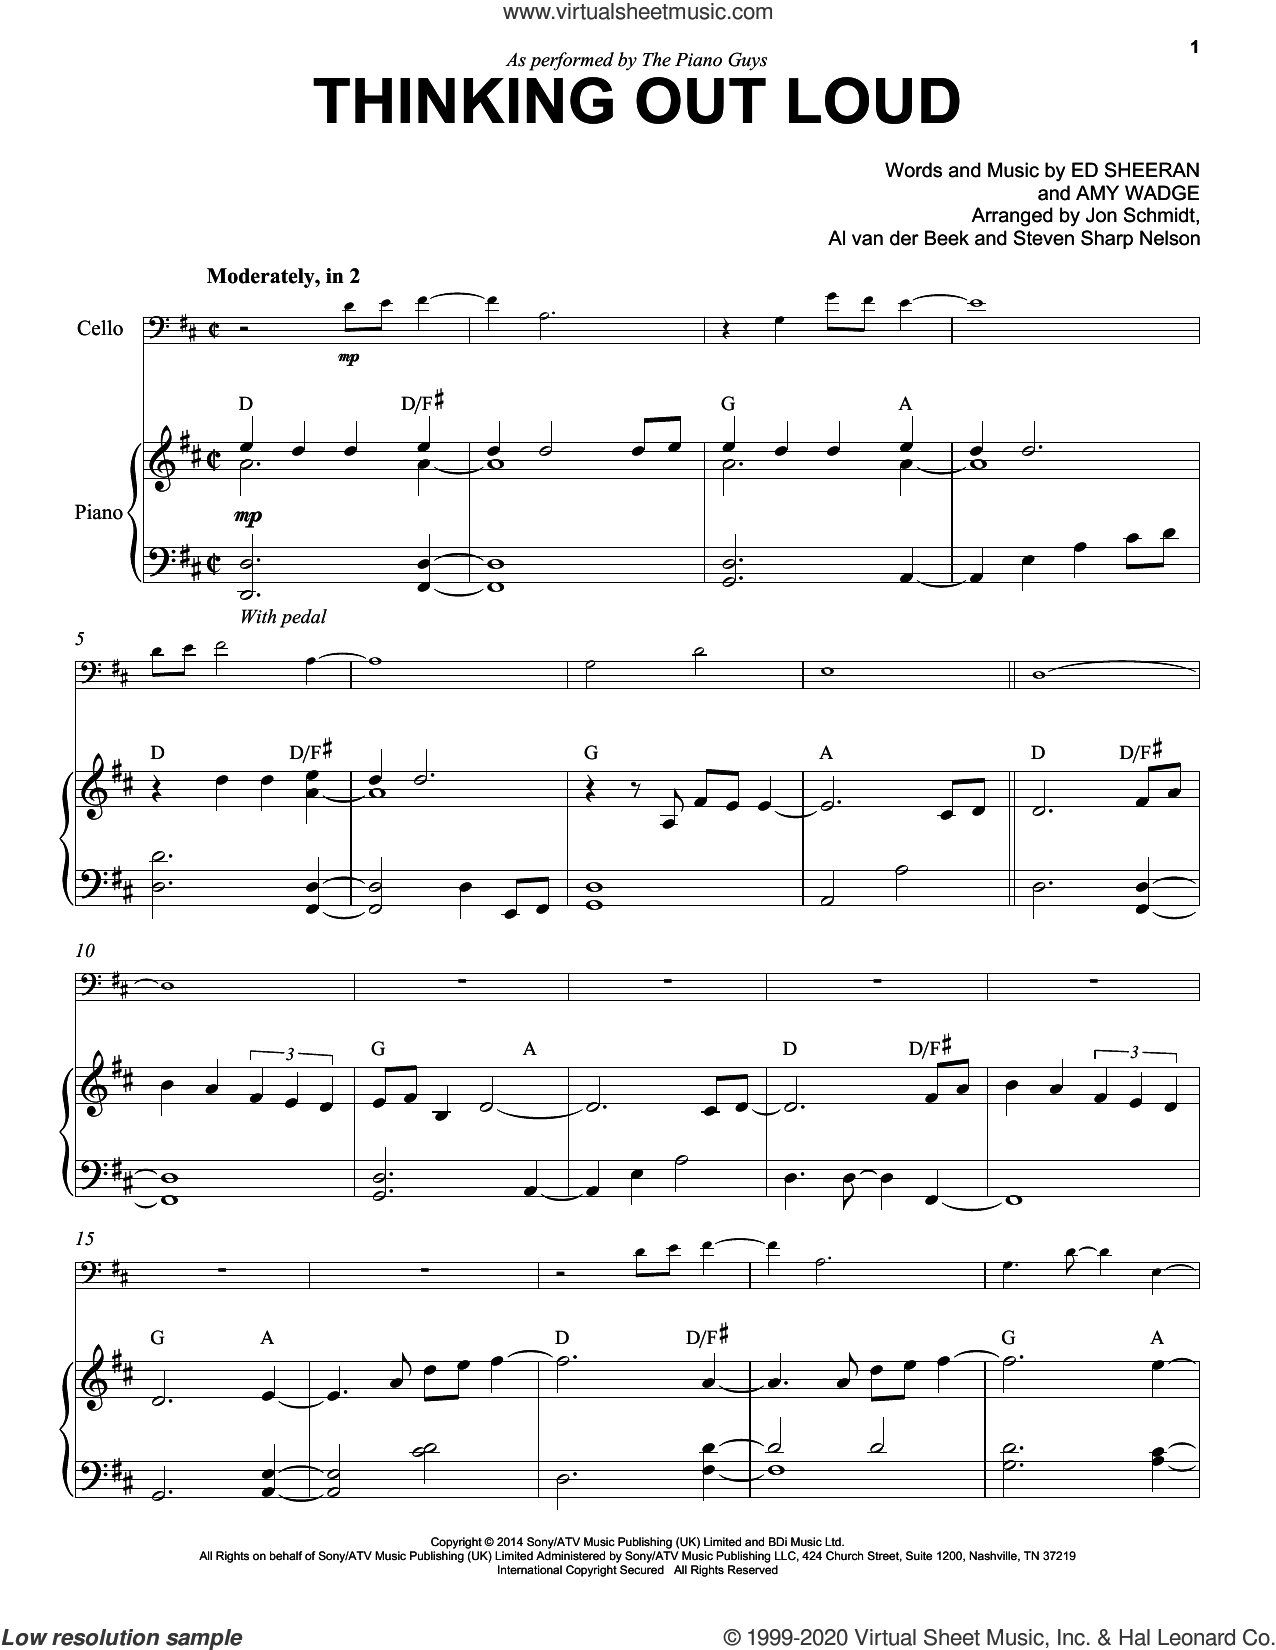 Thinking Out Loud sheet music for cello and piano by The Piano Guys, Al van der Beek, Jon Schmidt, Steven Sharp Nelson, Amy Wadge and Ed Sheeran, wedding score, intermediate skill level